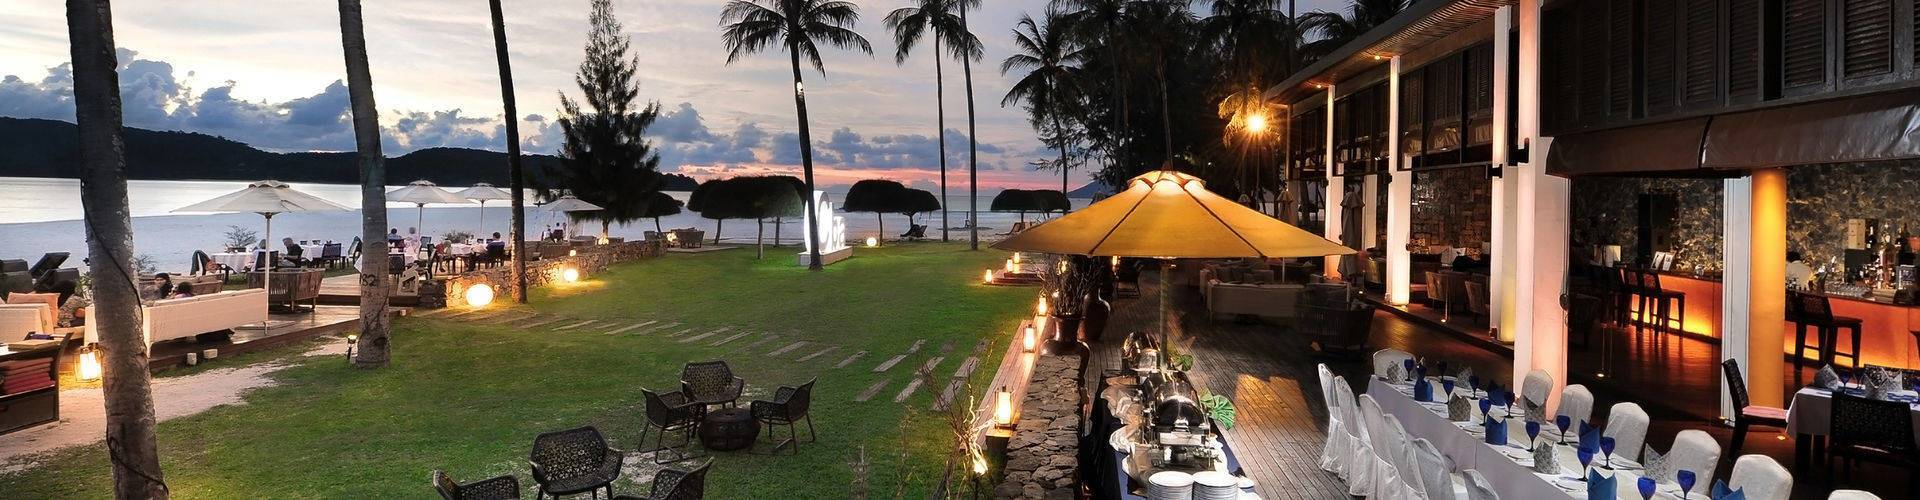 pelangi-beach-resort-dining